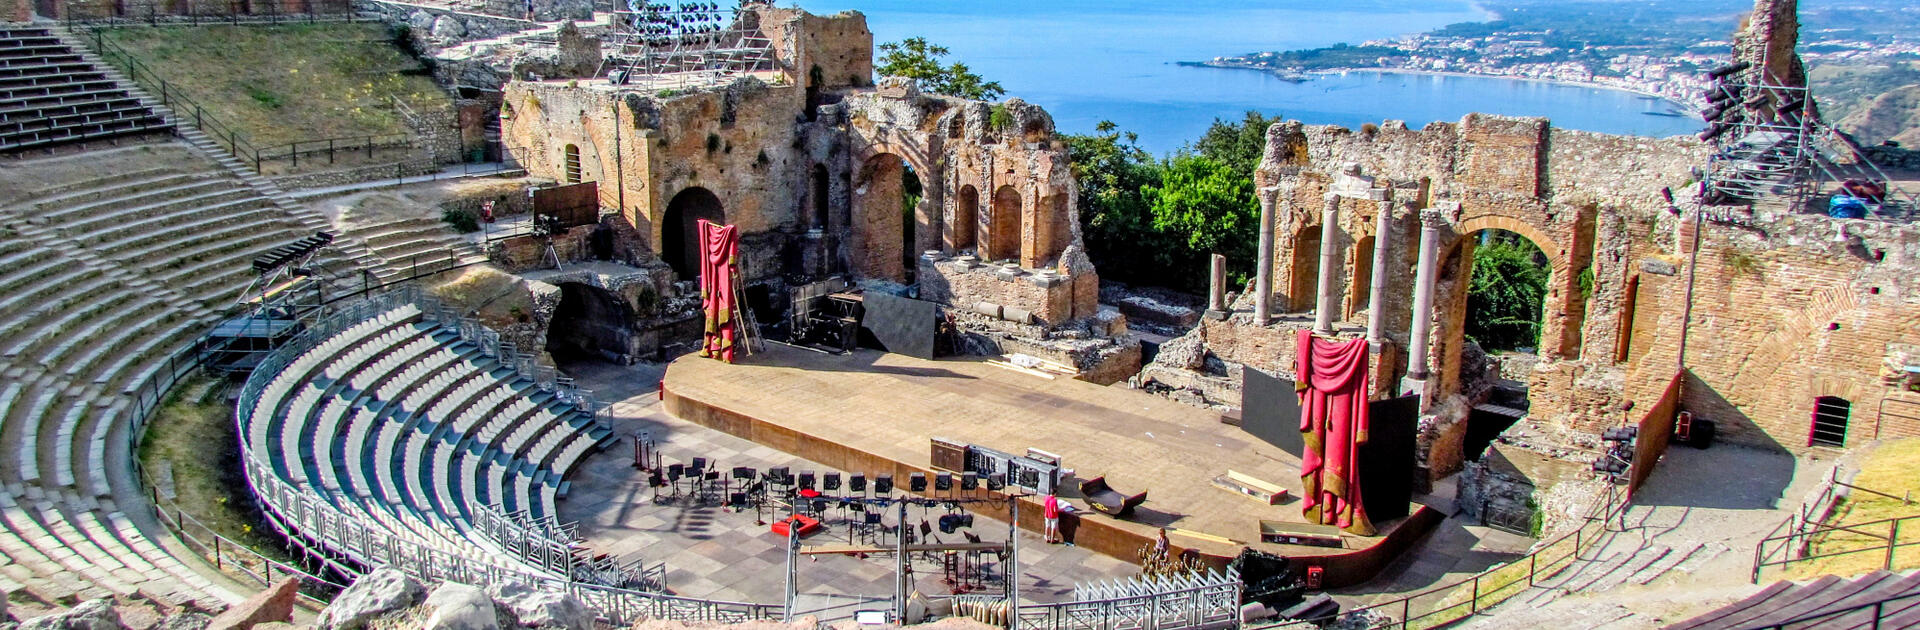 Taormina Arte 2020: cinema, theater, music, ballet